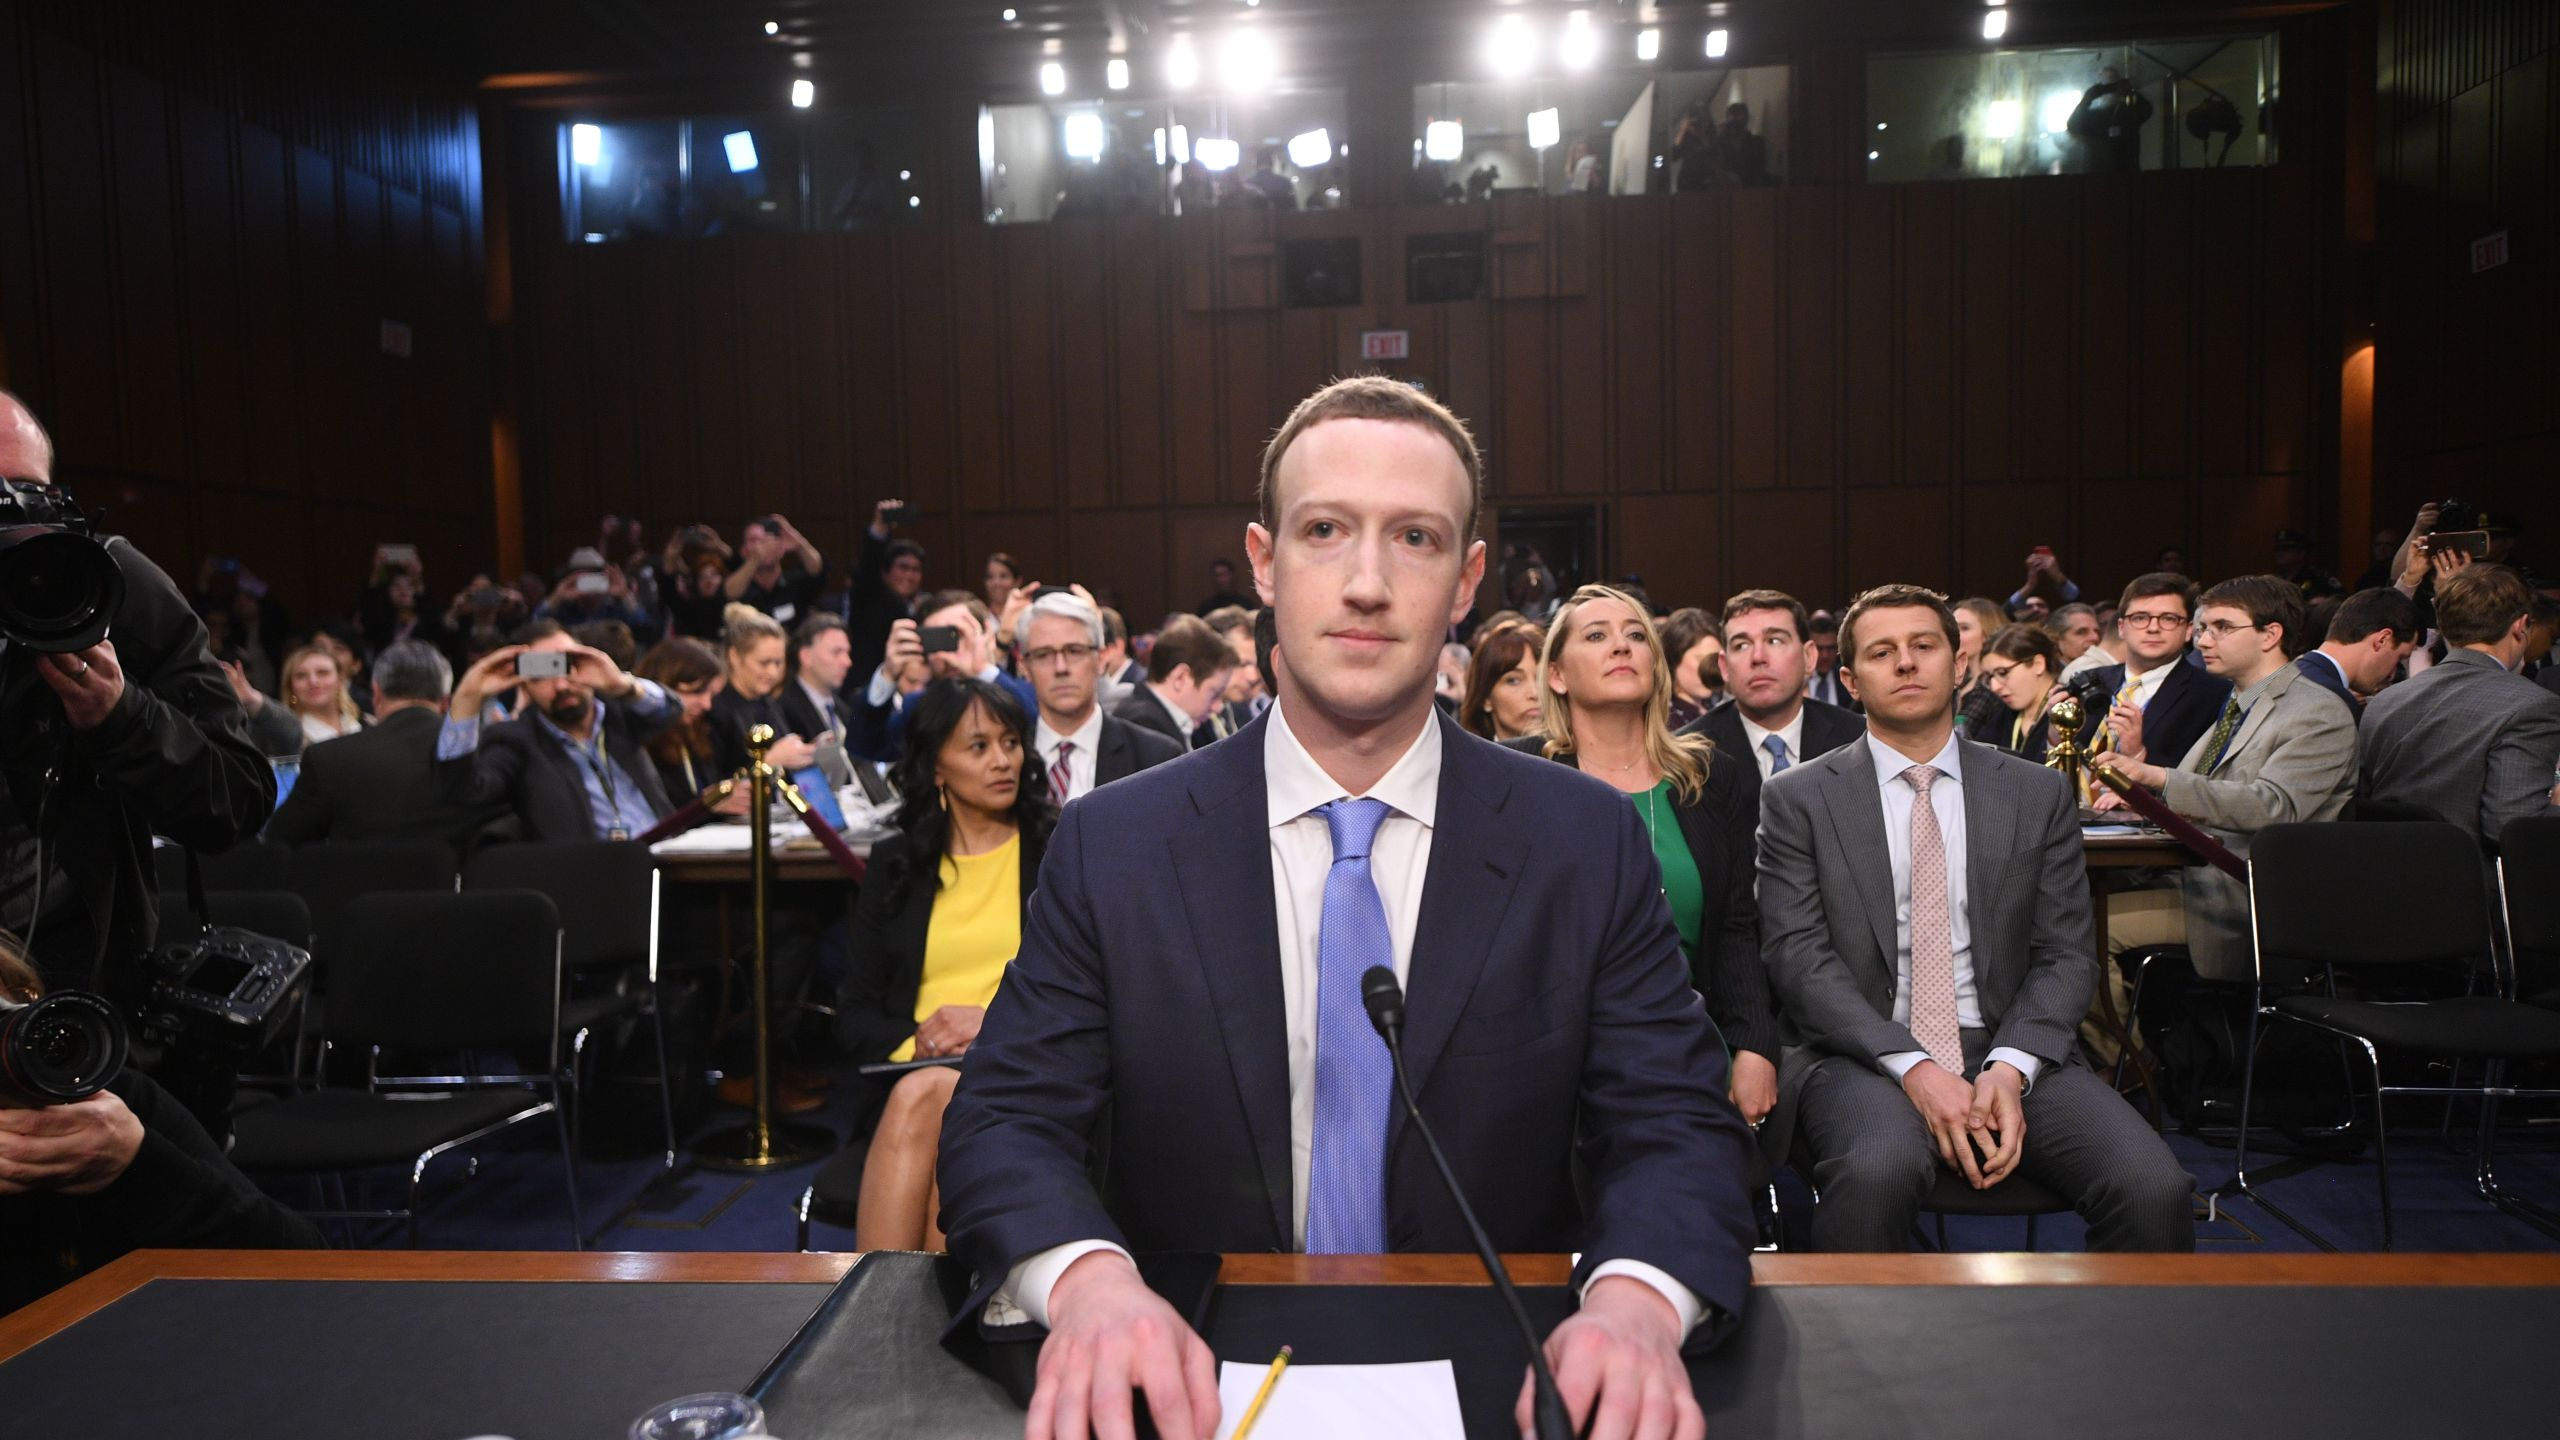 Facebook CEO Mark Zuckerberg arrives to testify before a joint hearing of the US Senate Commerce, Science and Transportation Committee and Senate Judiciary Committee on Capitol Hill, April 10, 2018. (Credit: Jim Watson/AFP/Getty Images)